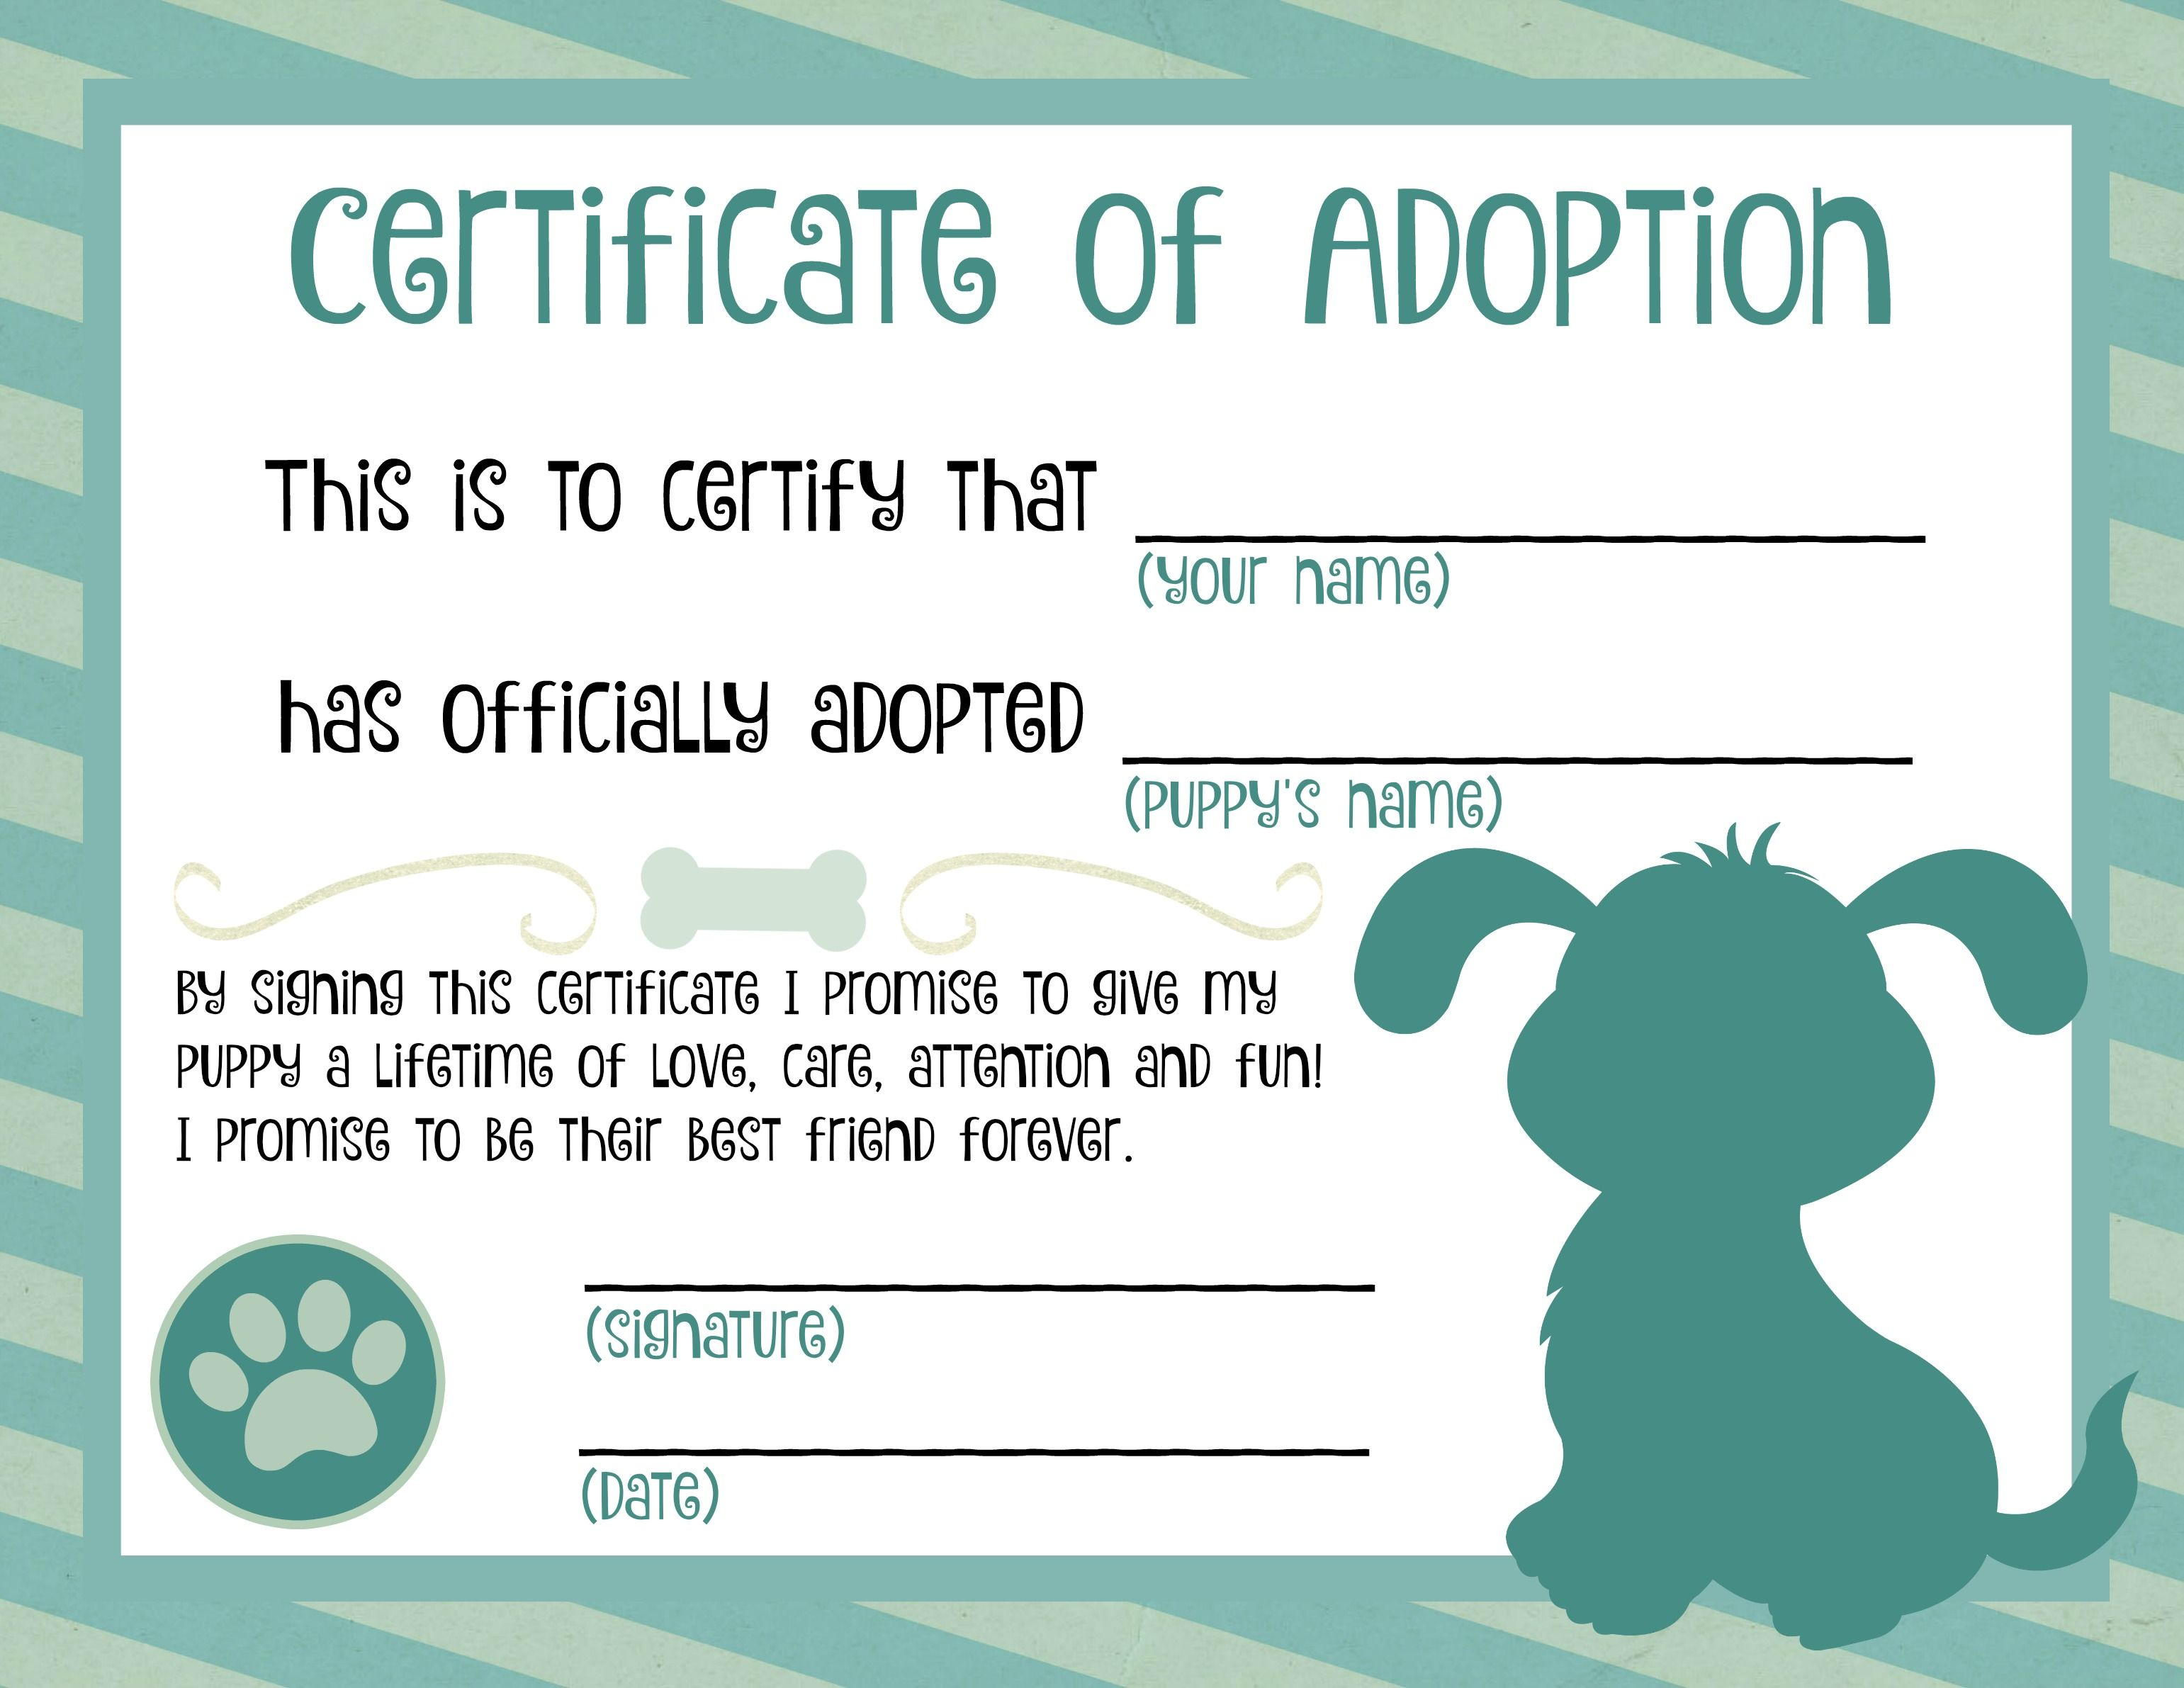 Puppy adoption certificate dog birthday pinterest for Dog certificate template